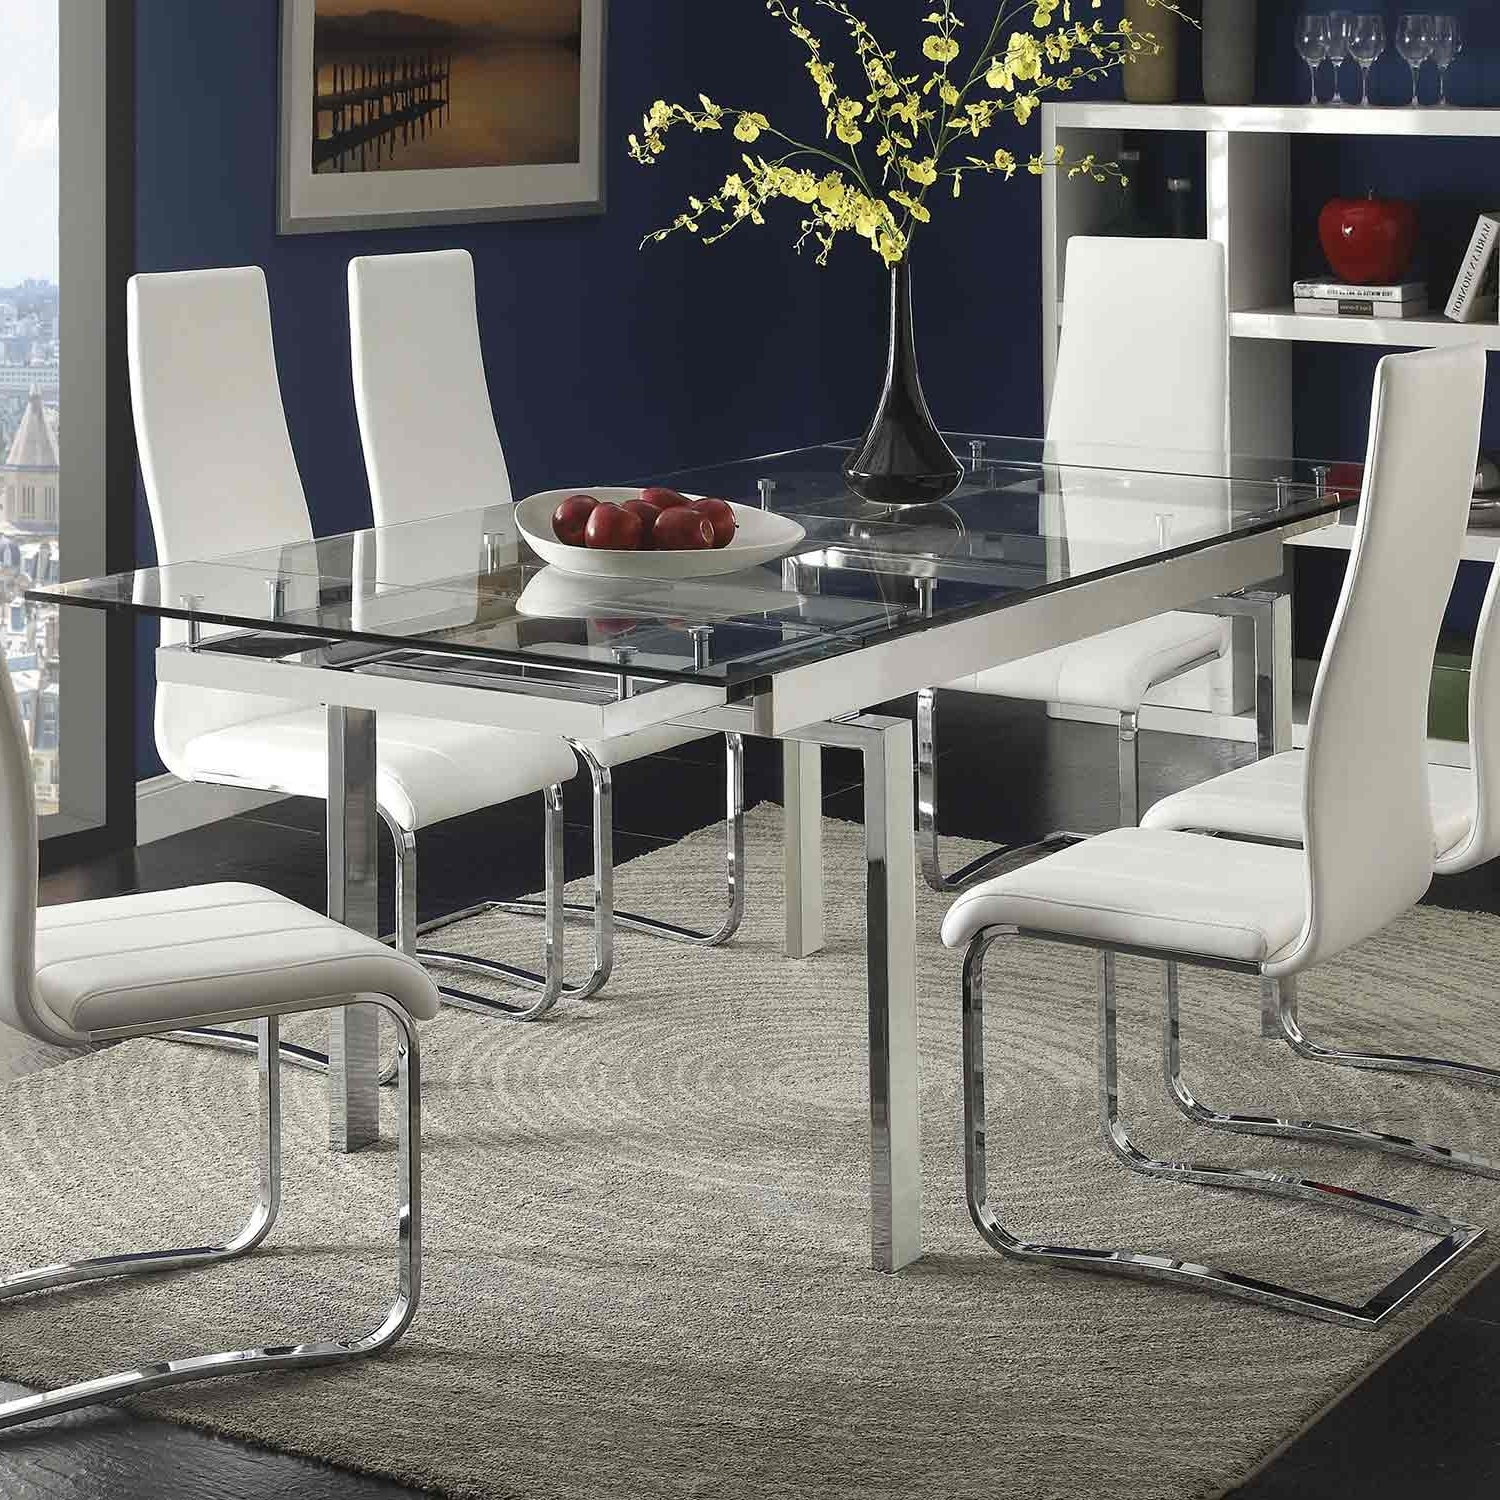 Coaster Wexford Rectangular Expandable Glass Dining Table – Chrome With Regard To Latest Chrome Dining Room Sets (View 8 of 25)